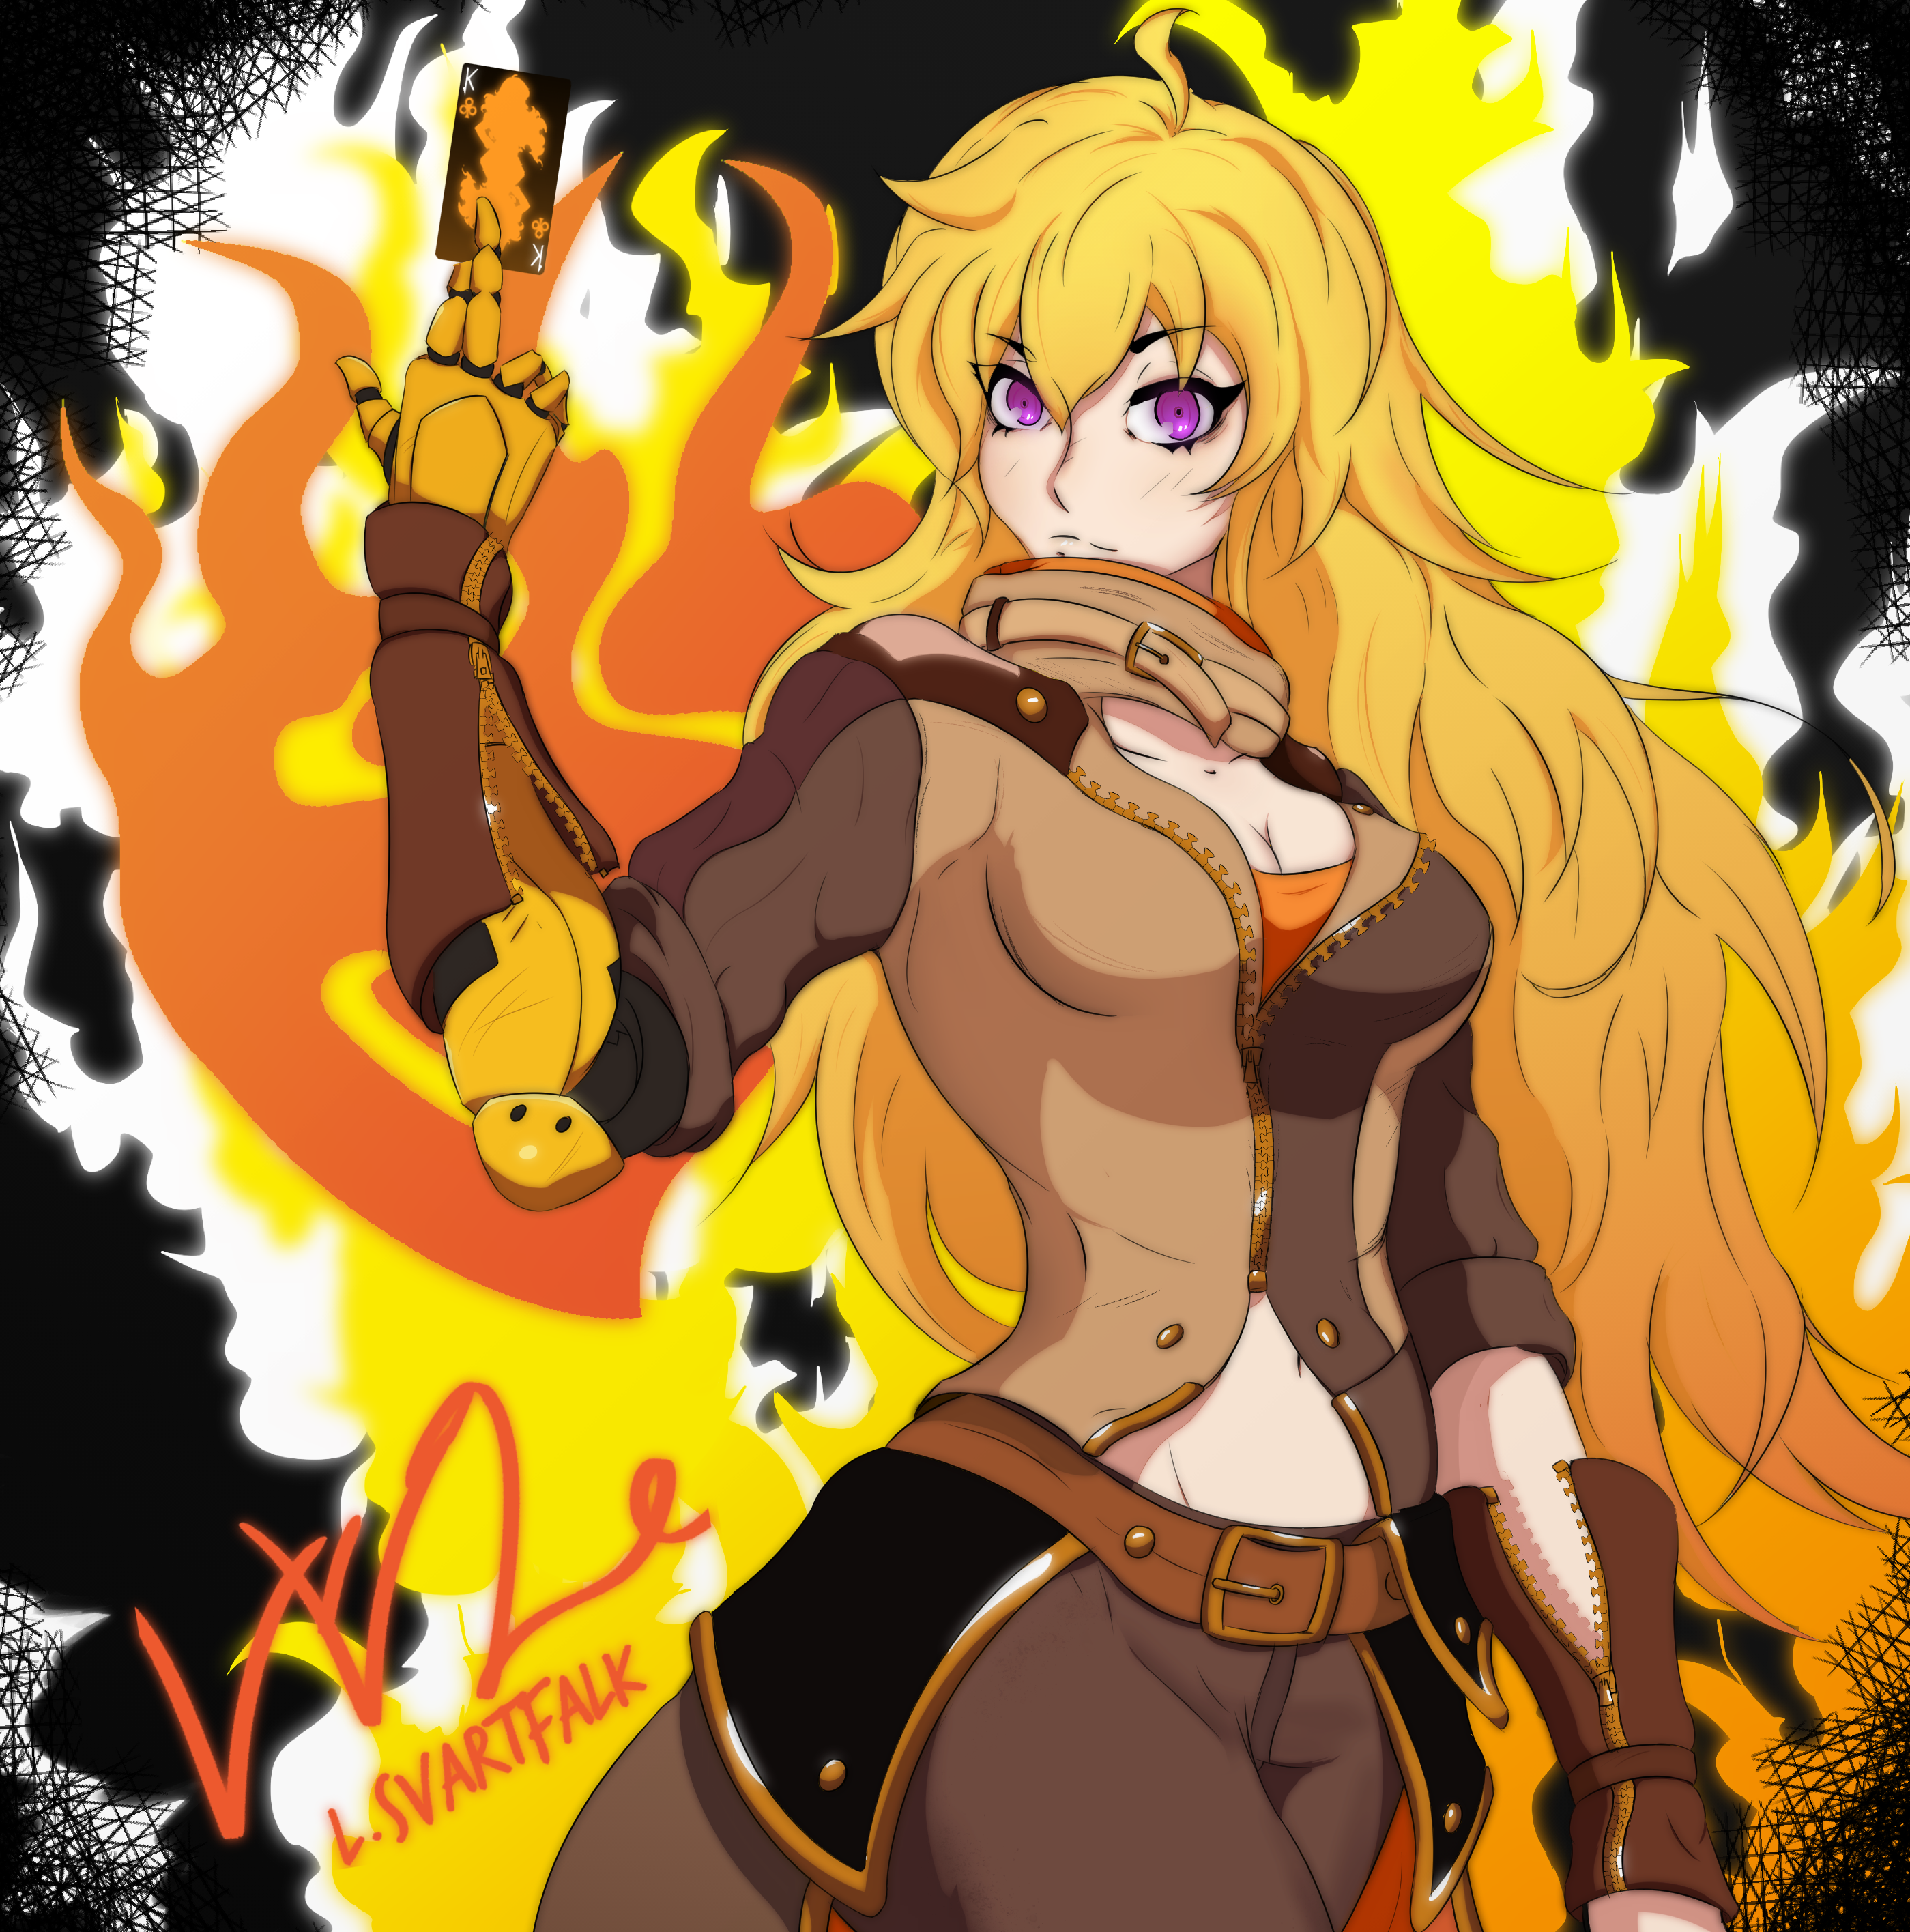 Yang Xiao Long Rwby Fan Art By Lulusensei On Deviantart